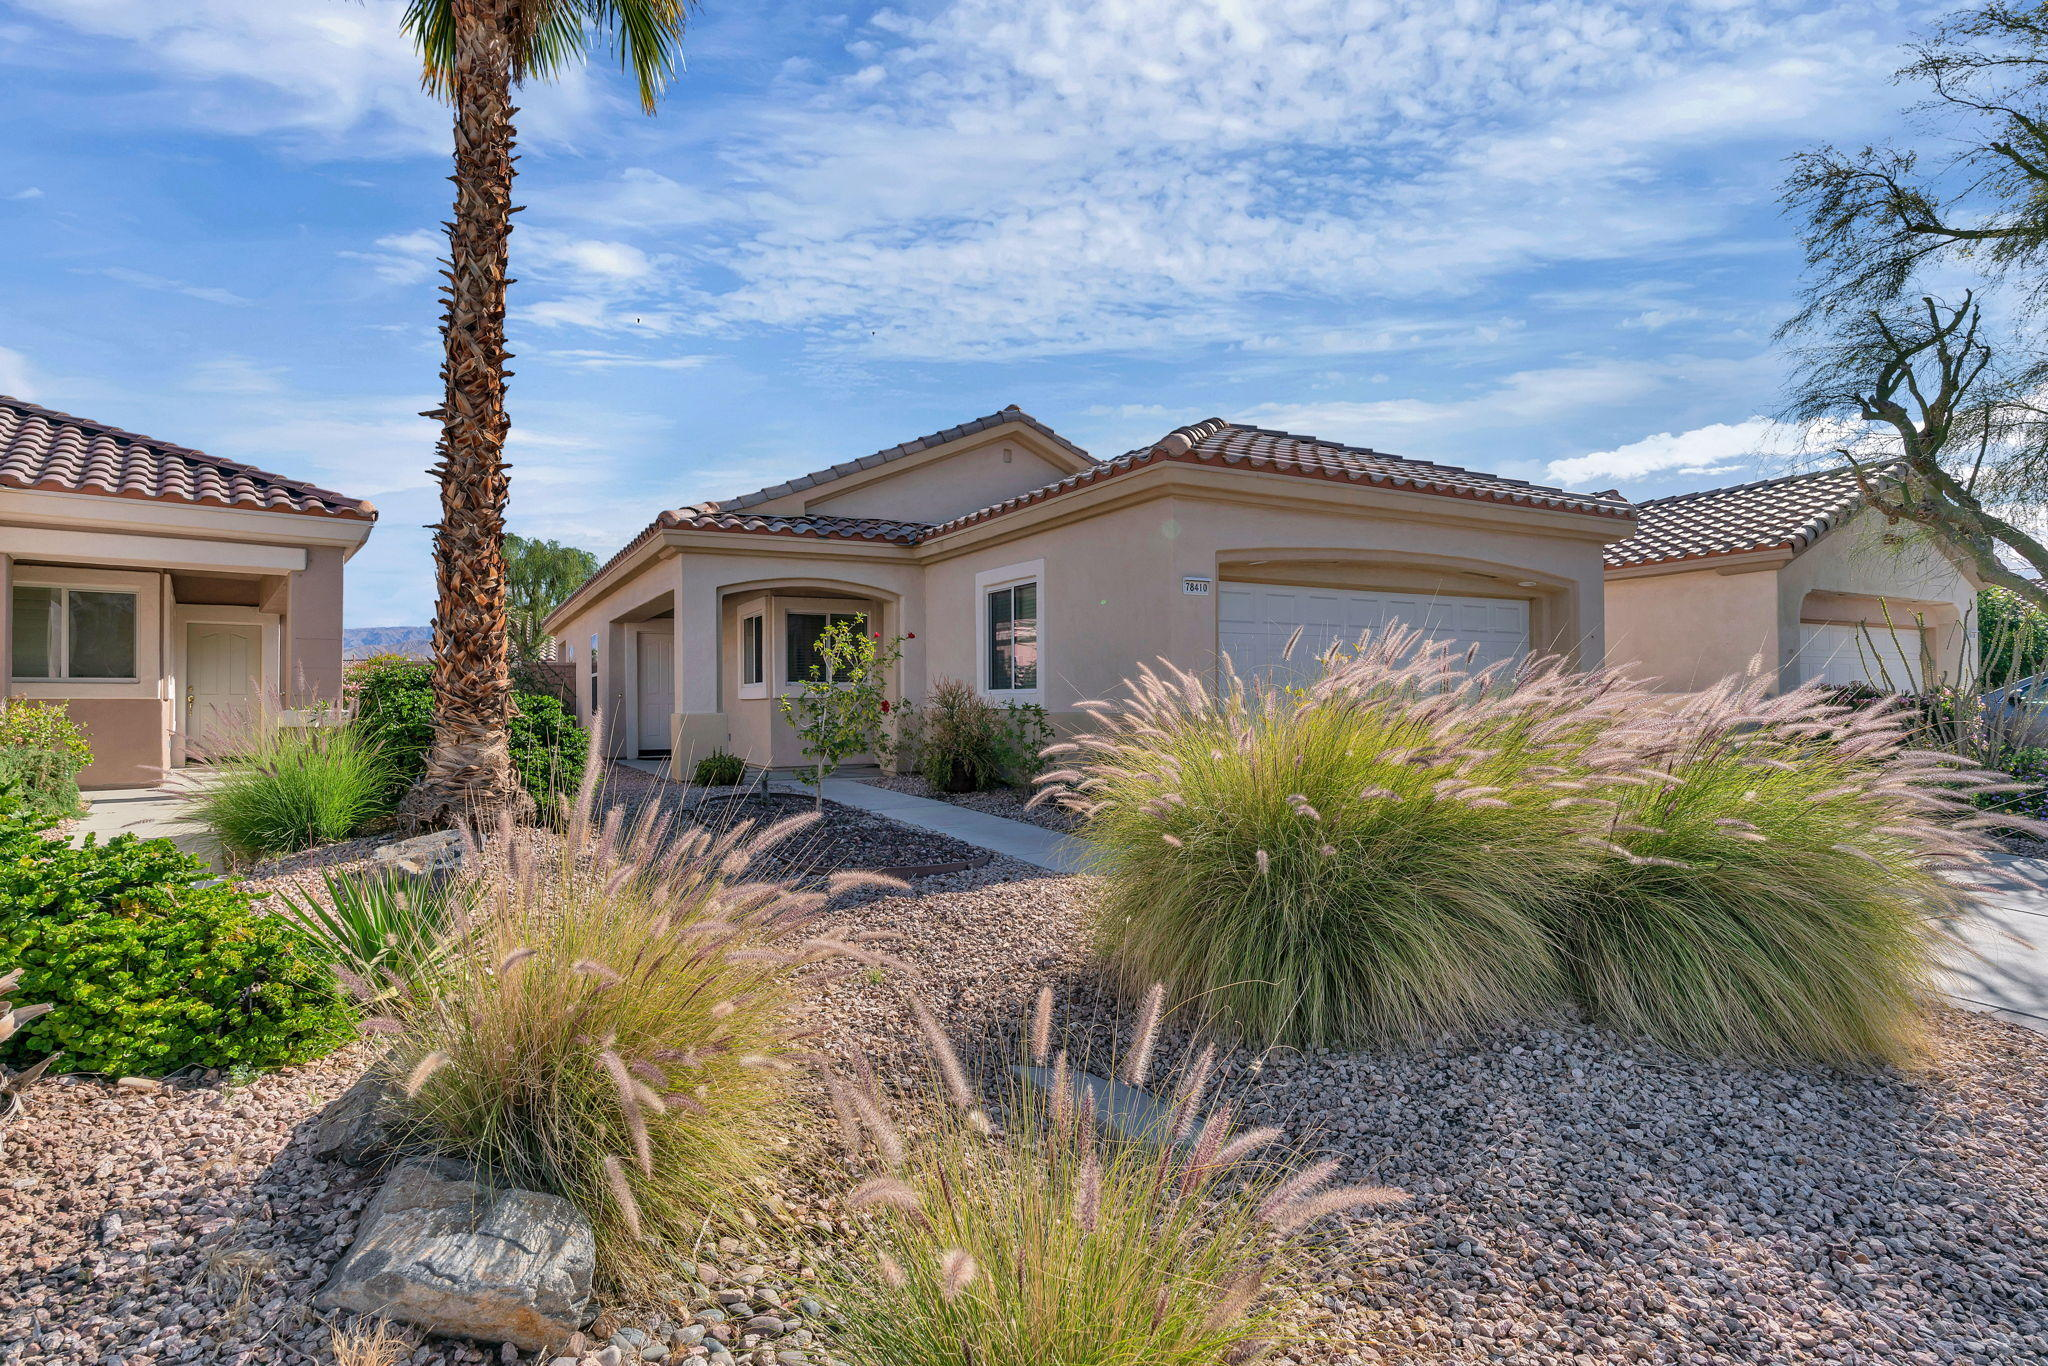 Photo of 78410 Winsford Circle, Palm Desert, CA 92211